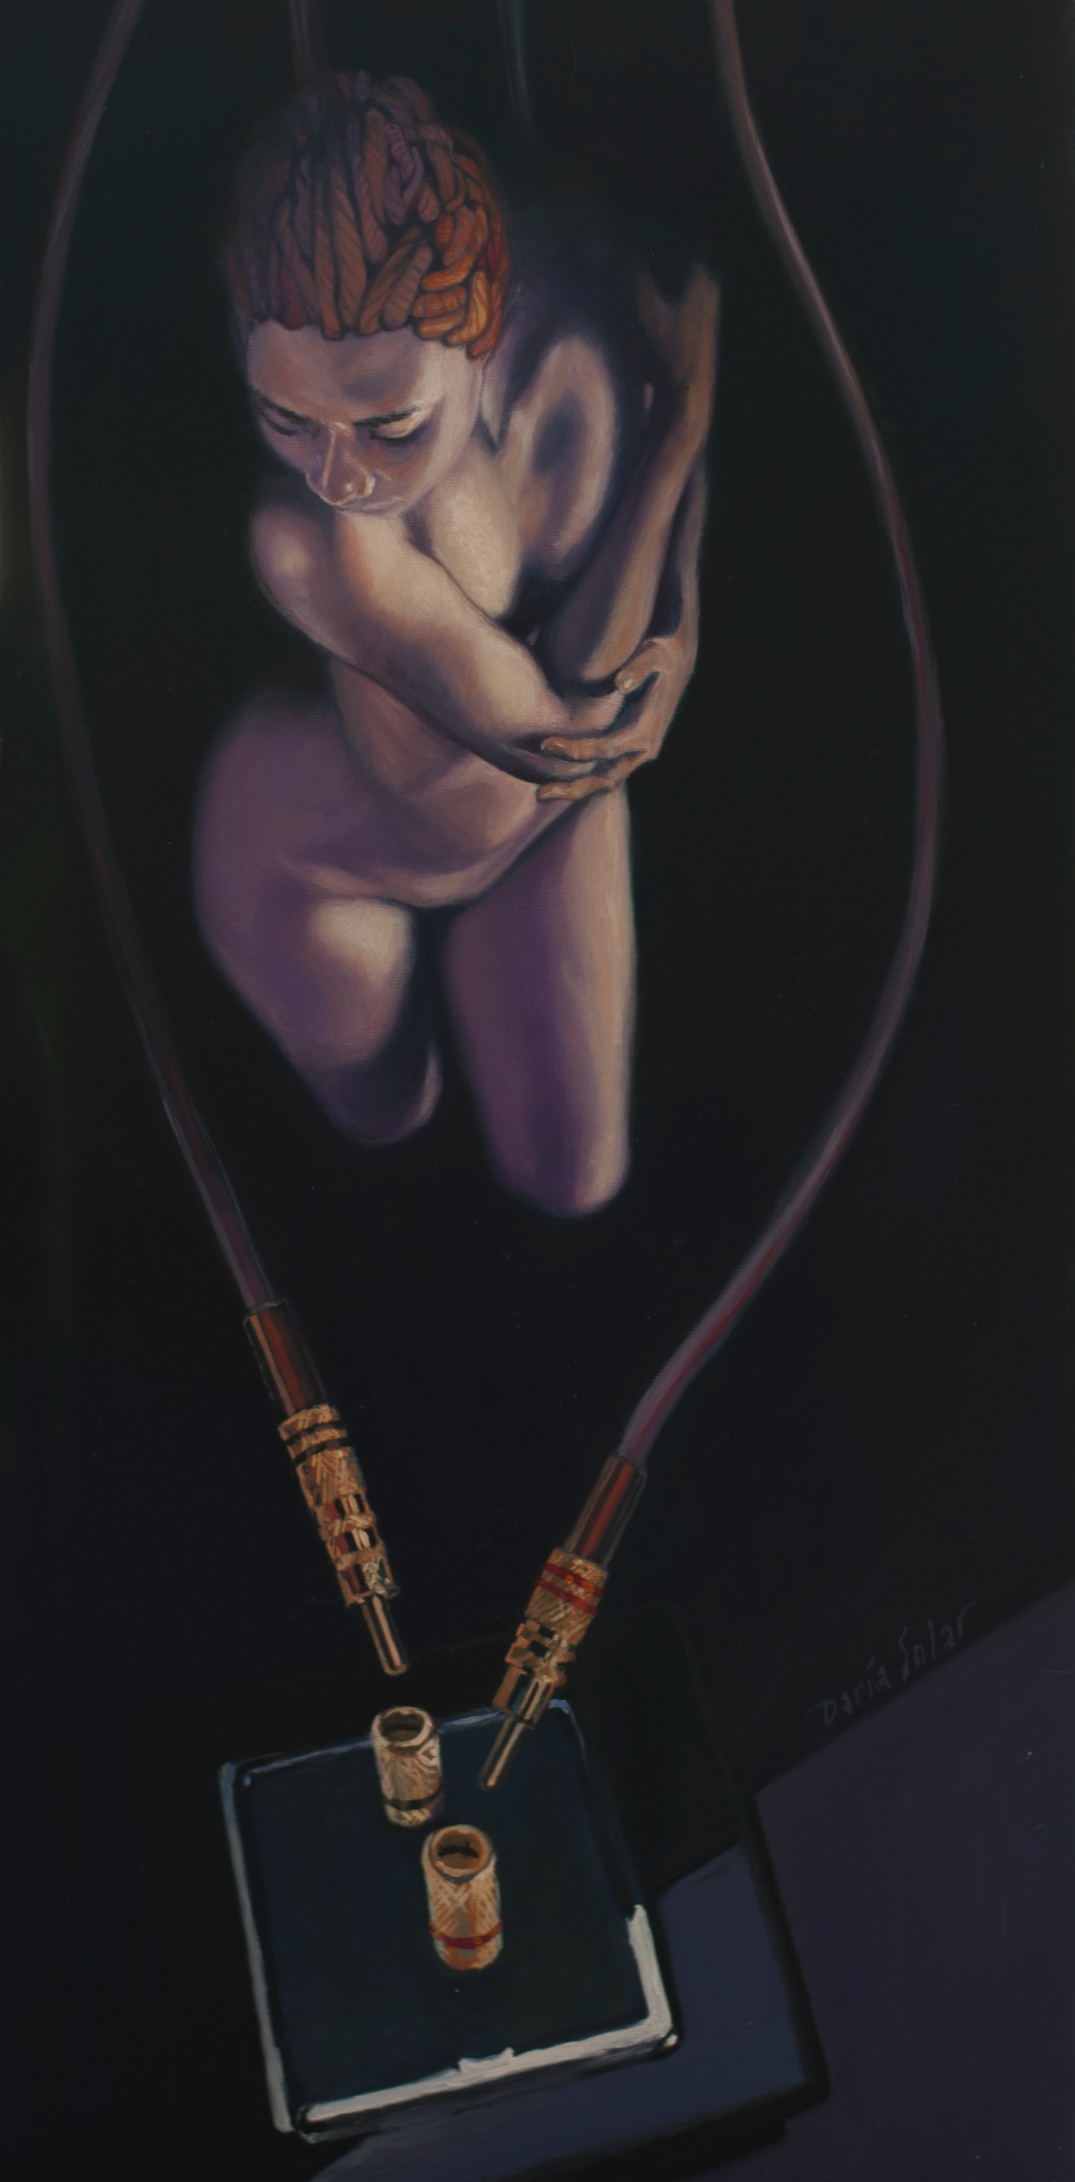 Baffled Euterpe oil on canvas 30x70 by Daria Solar